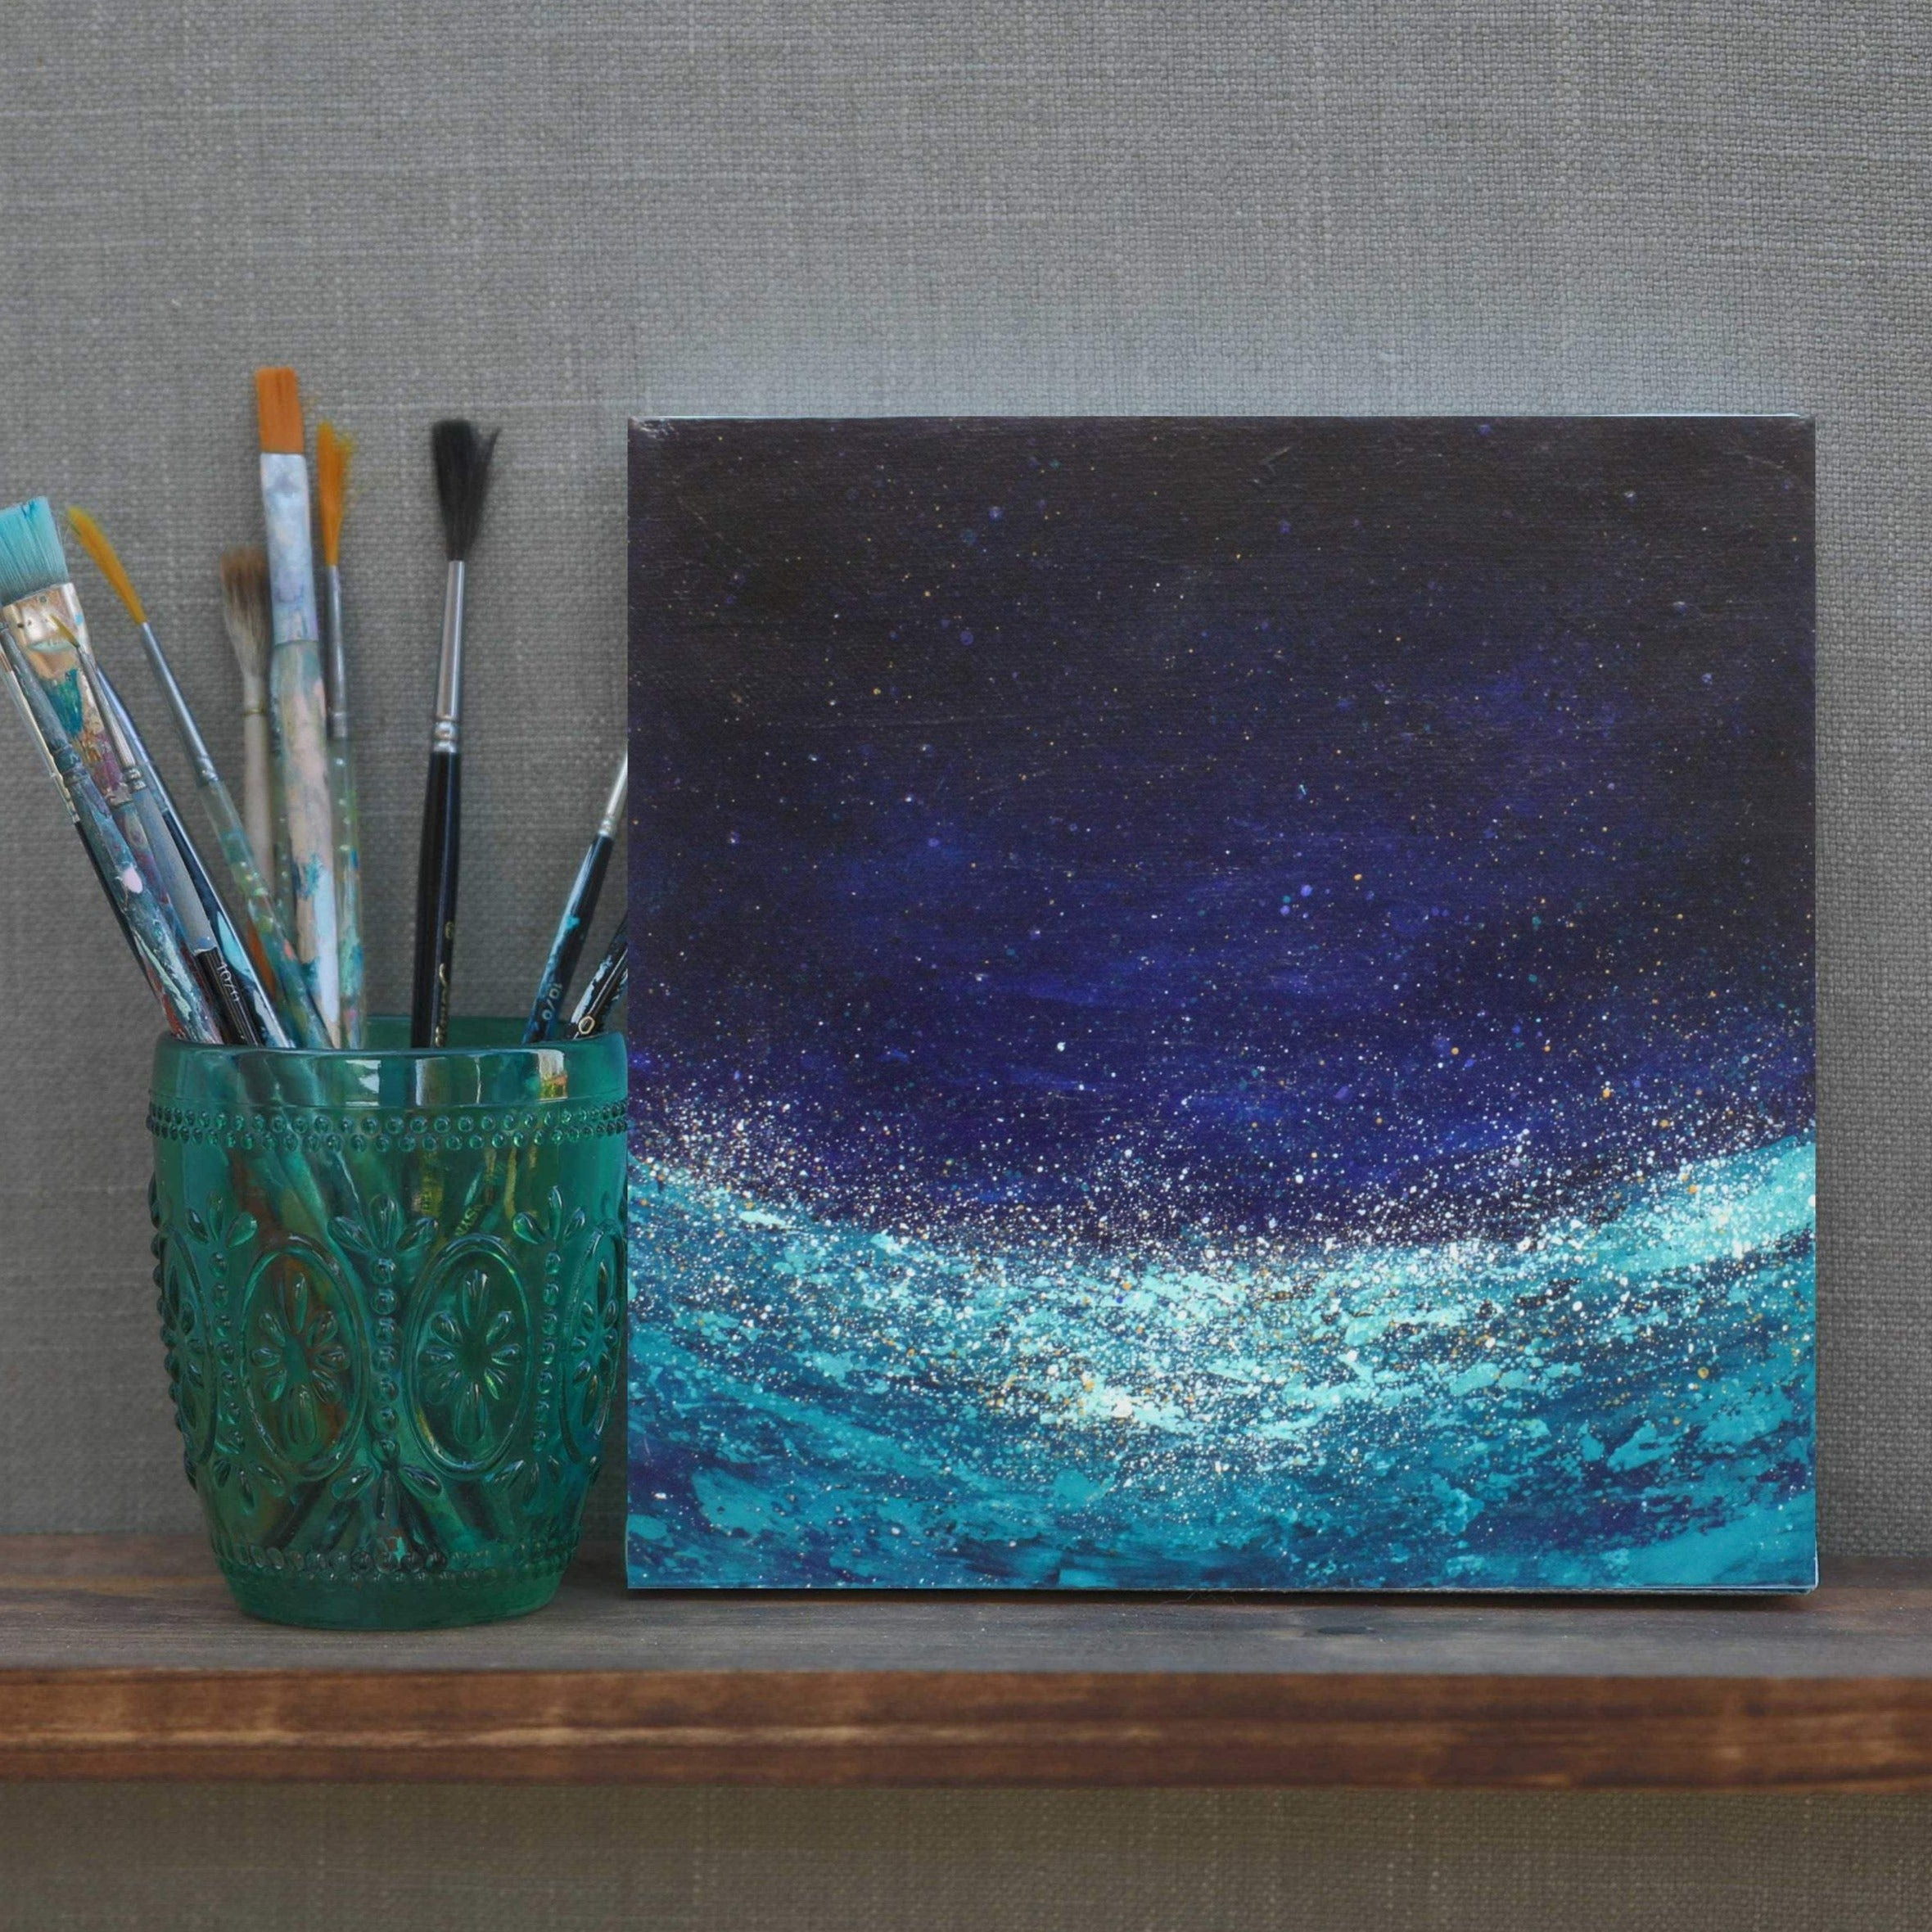 abstract painting of ocean at night - blue and teal small painting